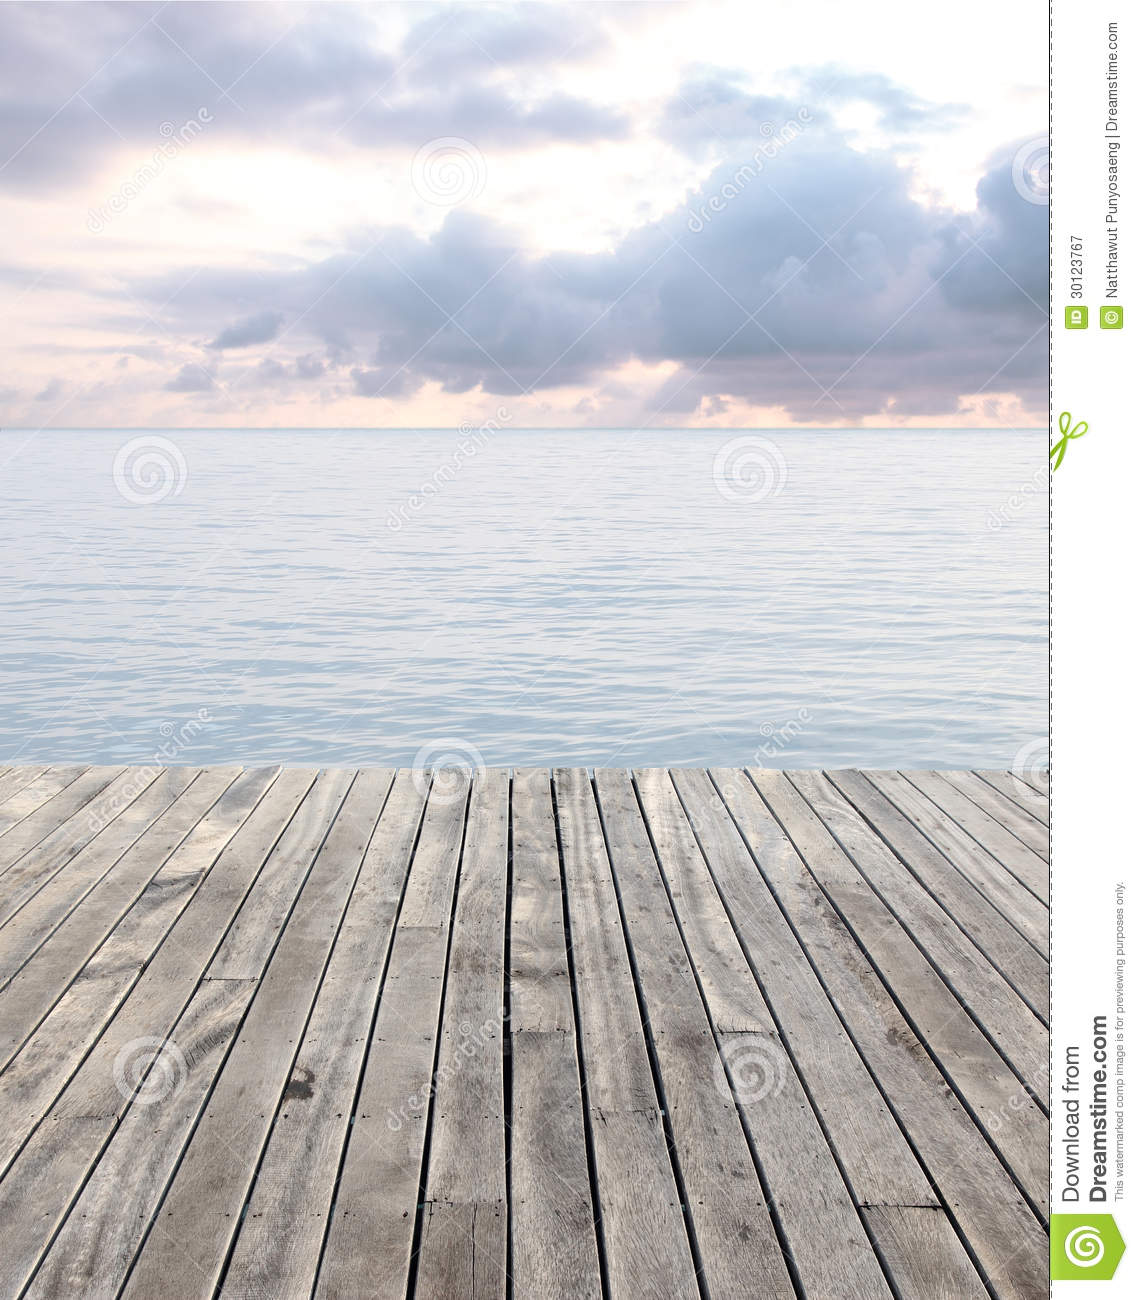 Wood Floor On Beach Sea And Blue Sky For Background Stock: Wooden Floor And Blue Sea With Waves And Cloudy Sky Stock